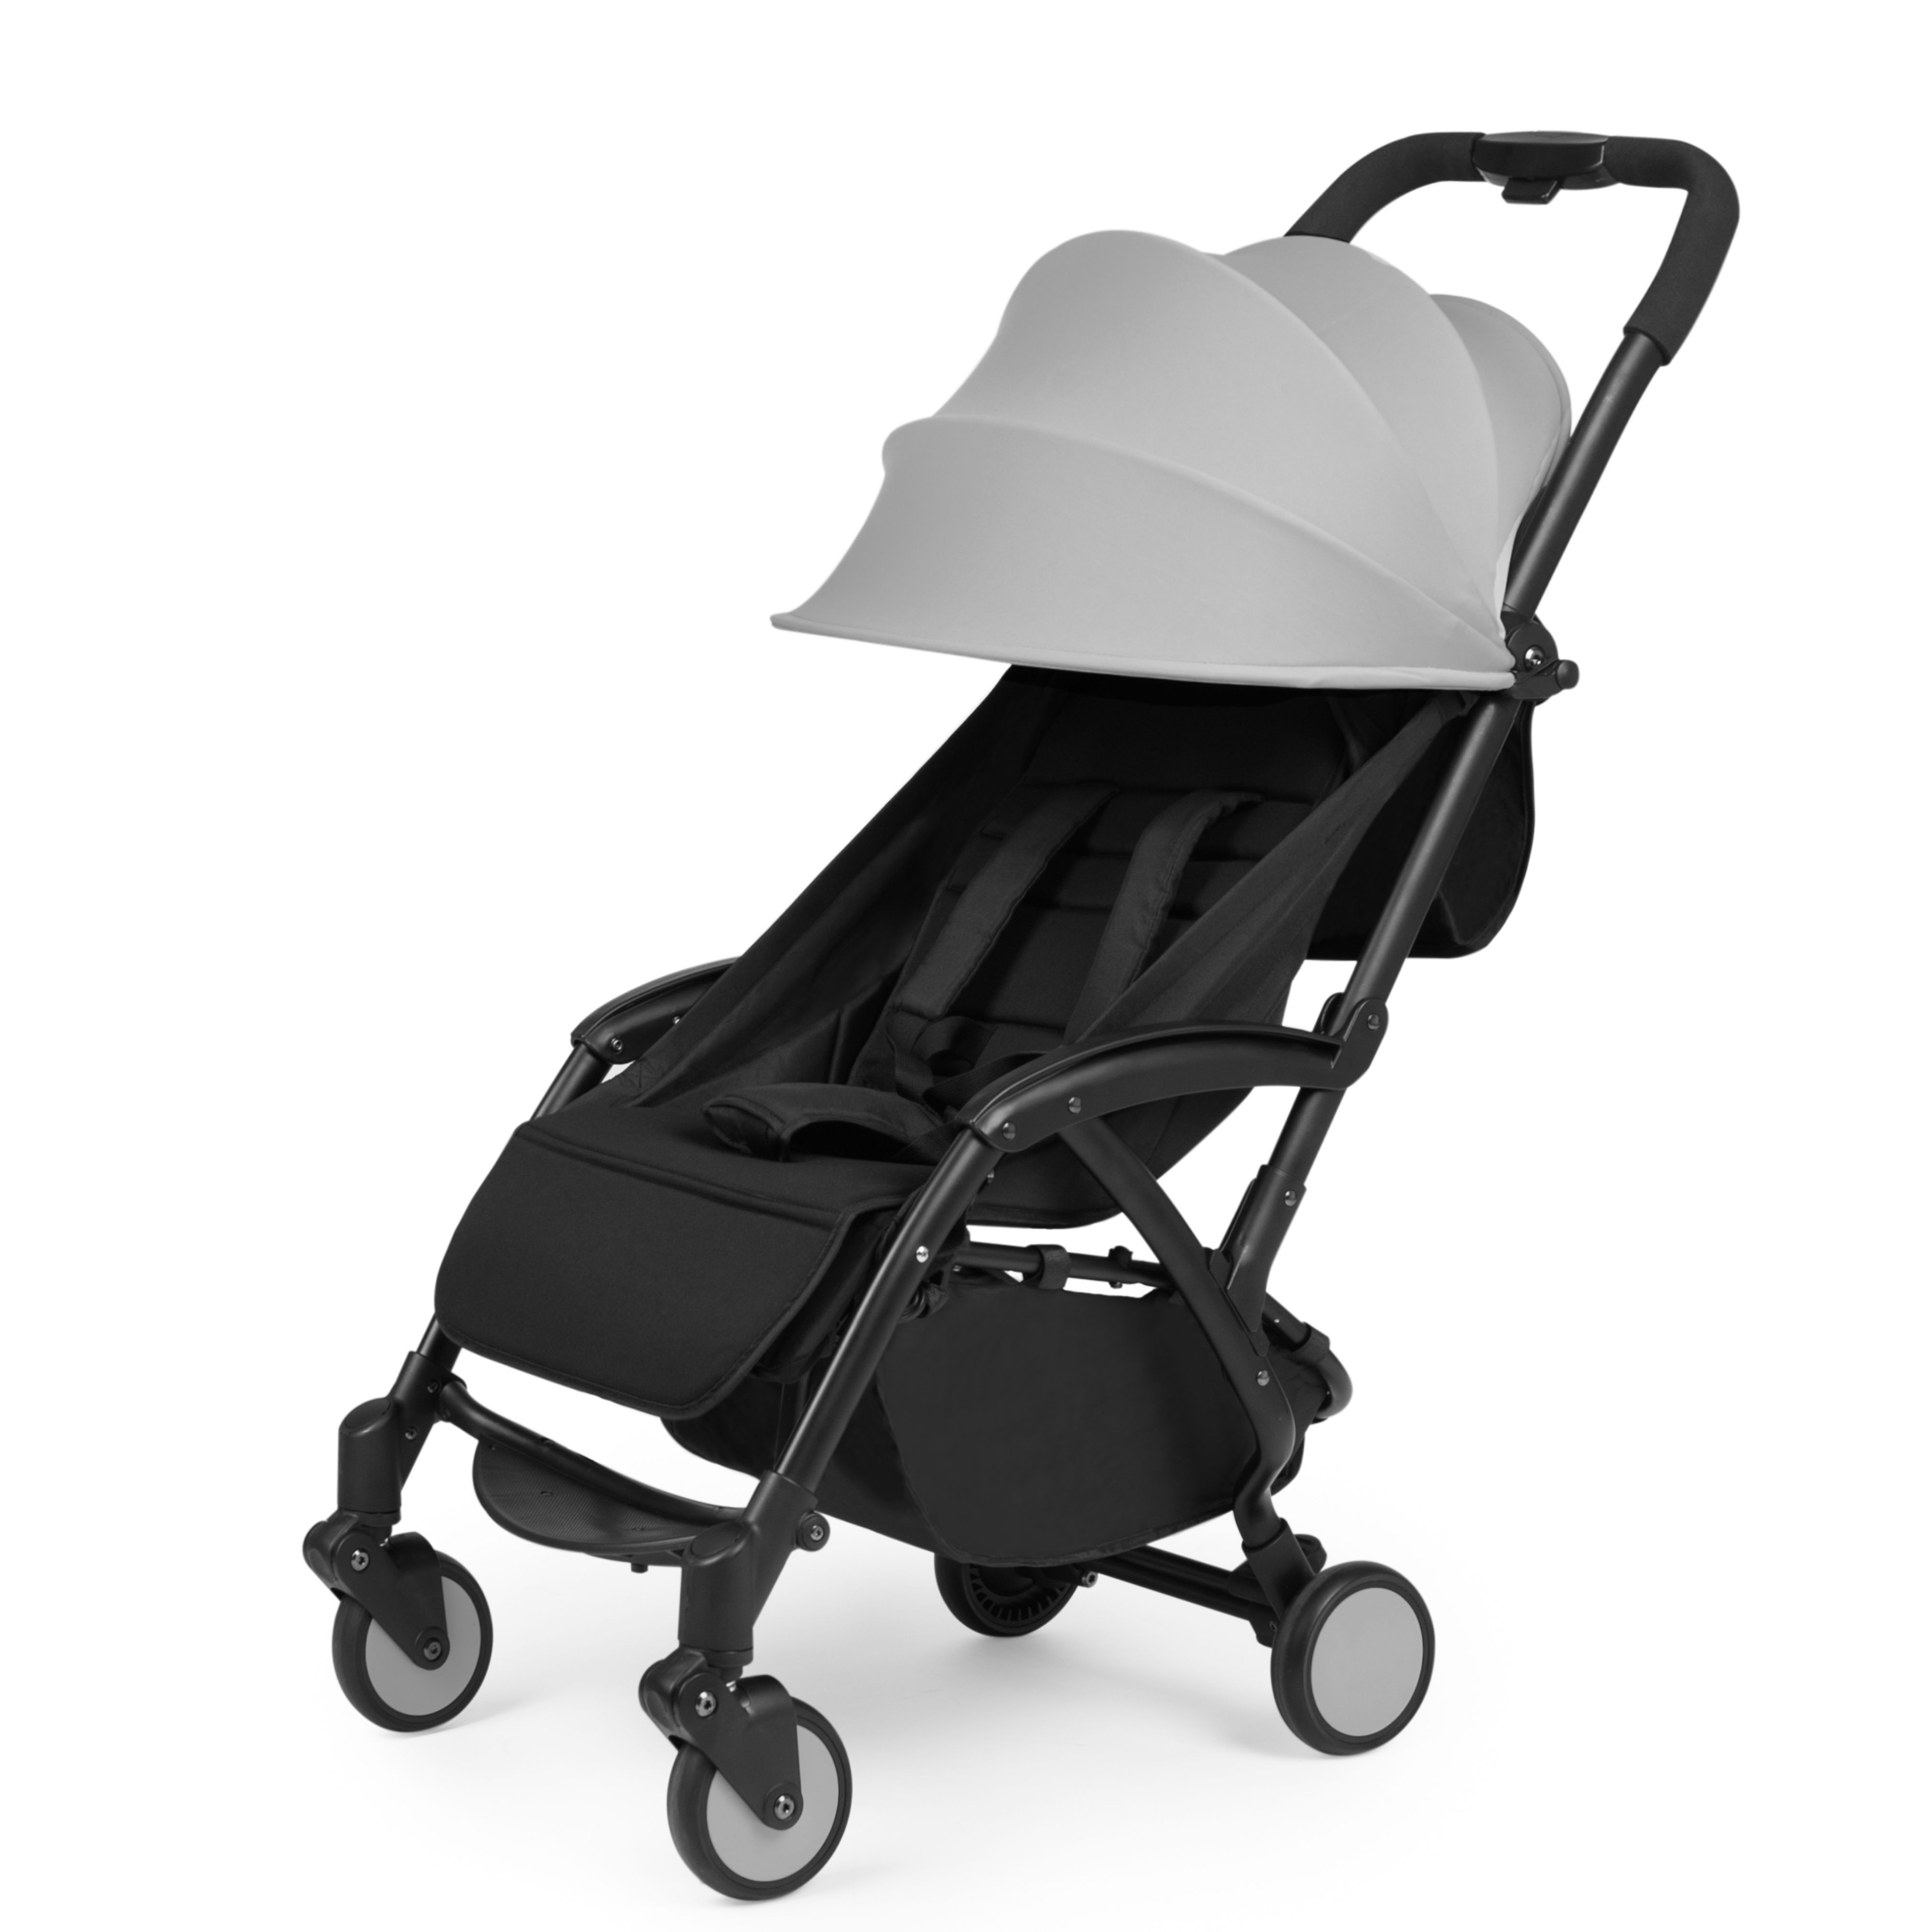 Pin by Ickle Bubba on Our Products Stroller, Pram